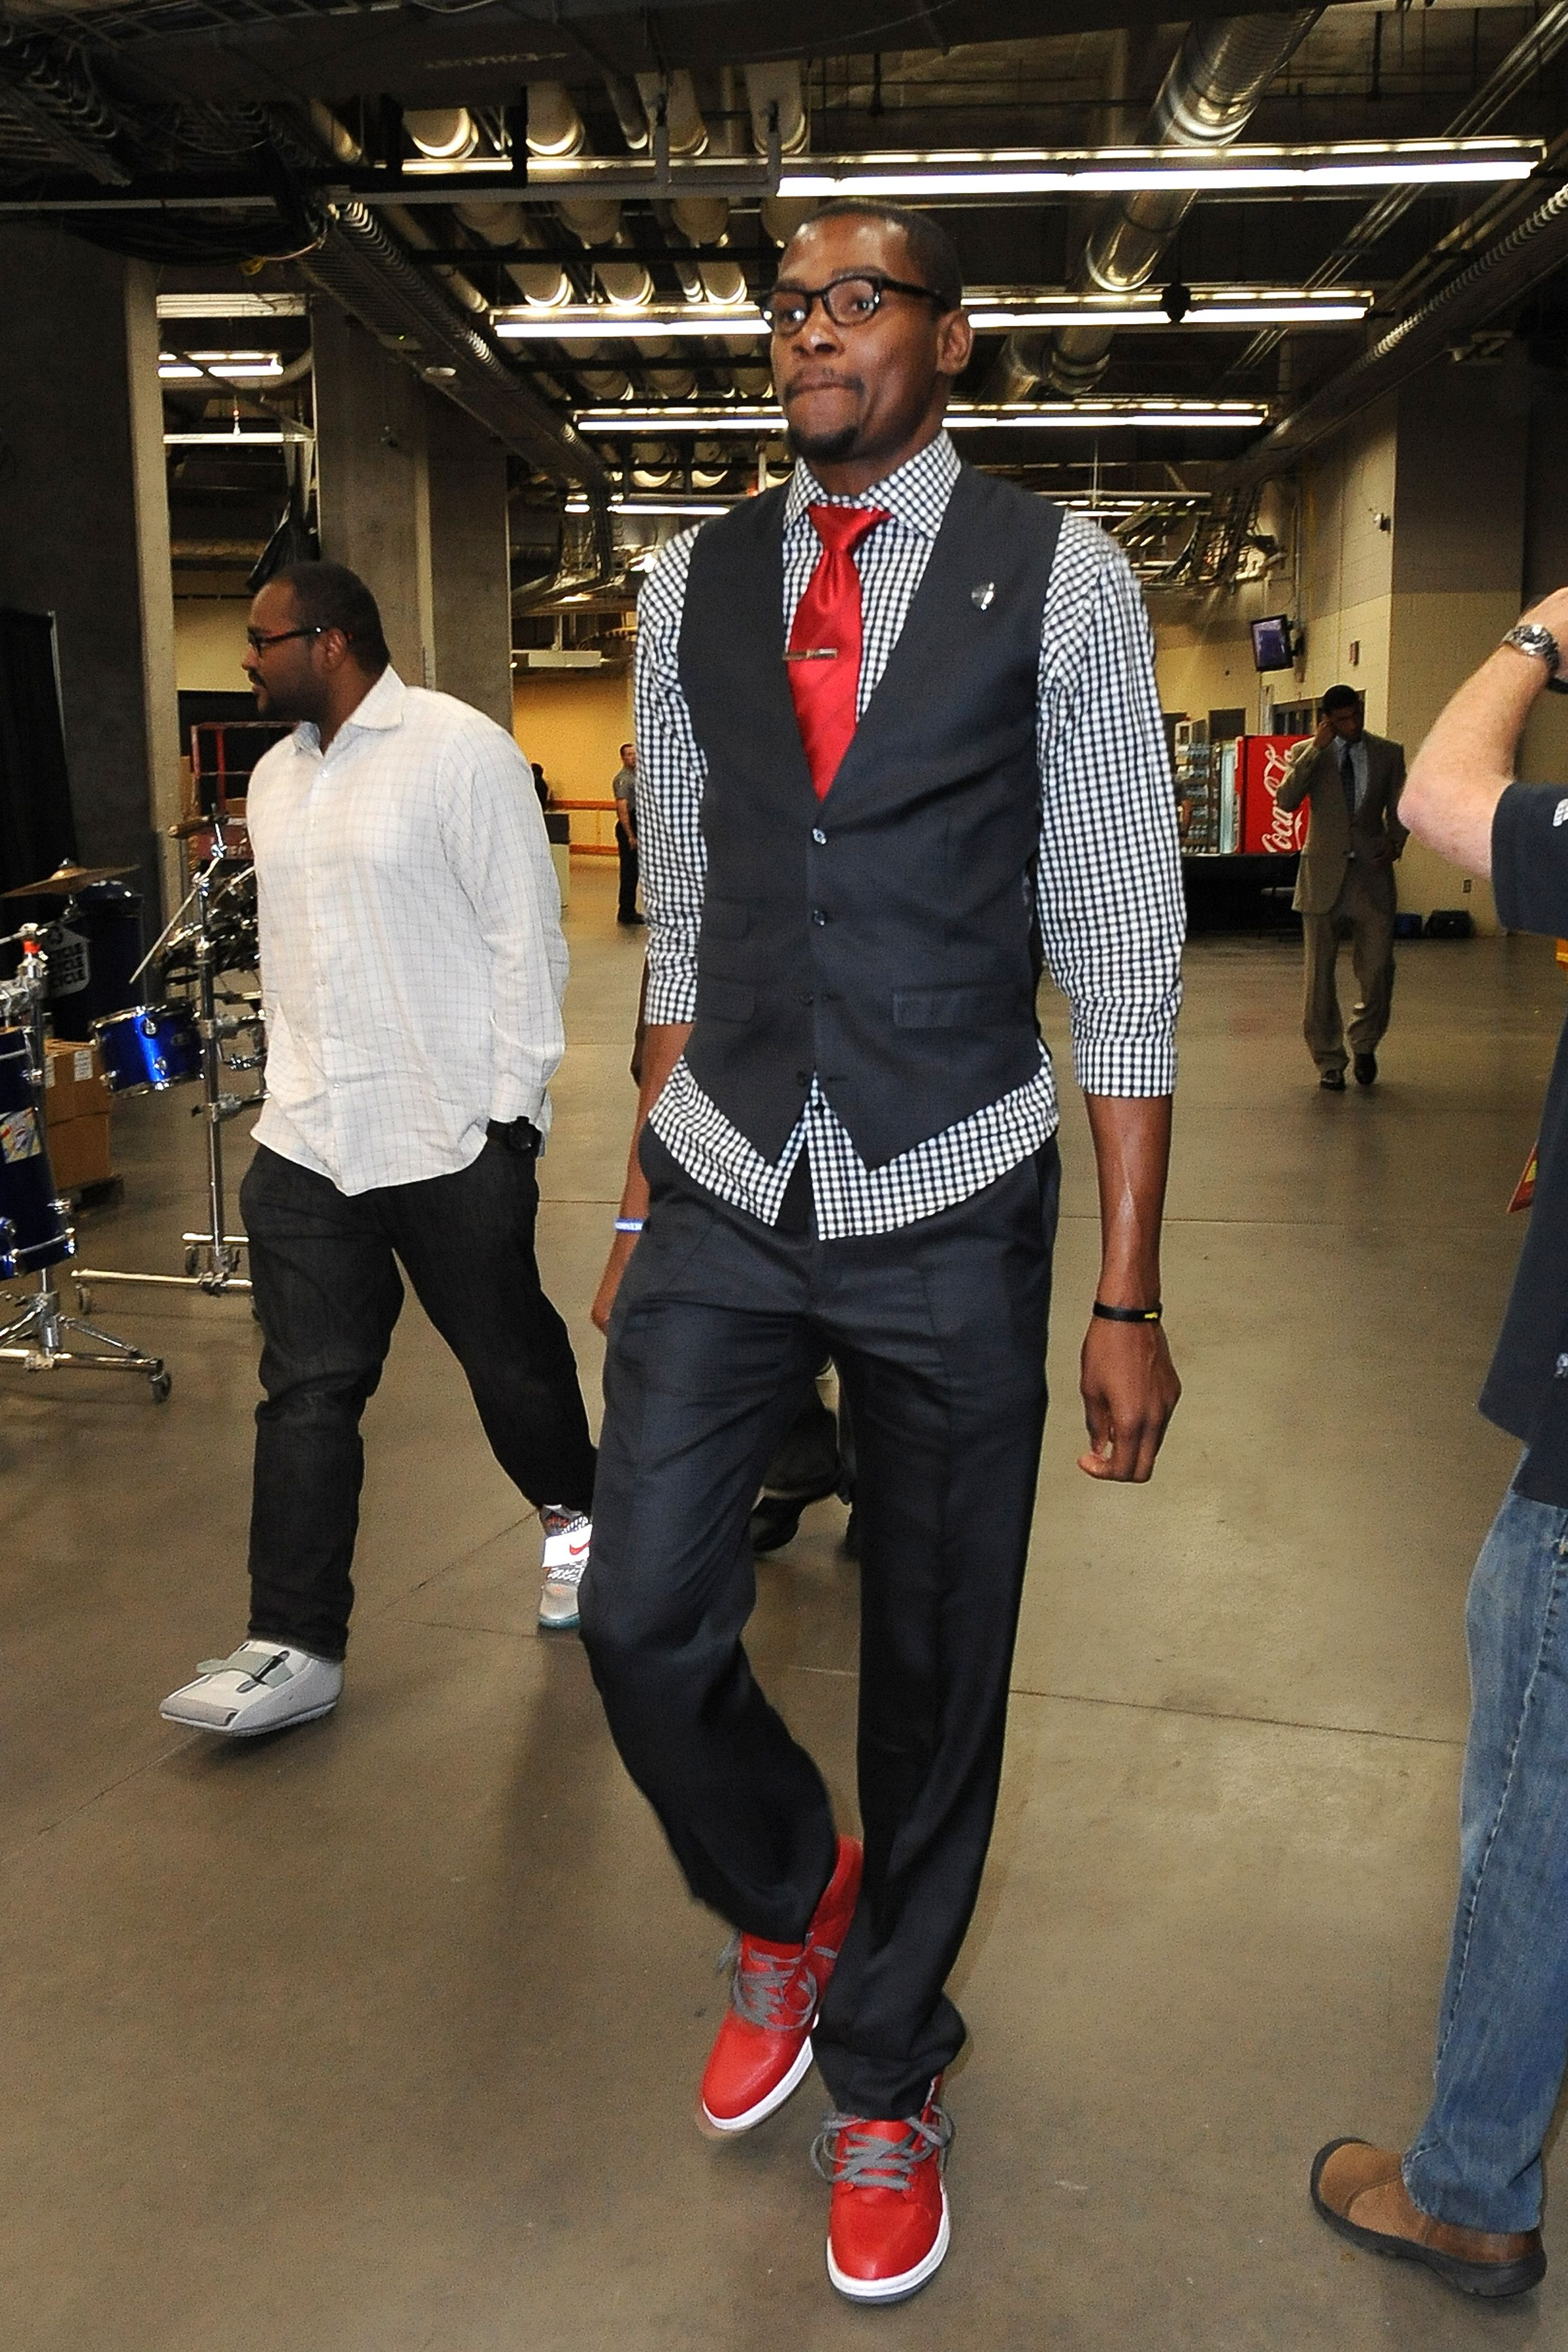 Kevin Durant, vest, red sneakers, glasses, Oklahoma City